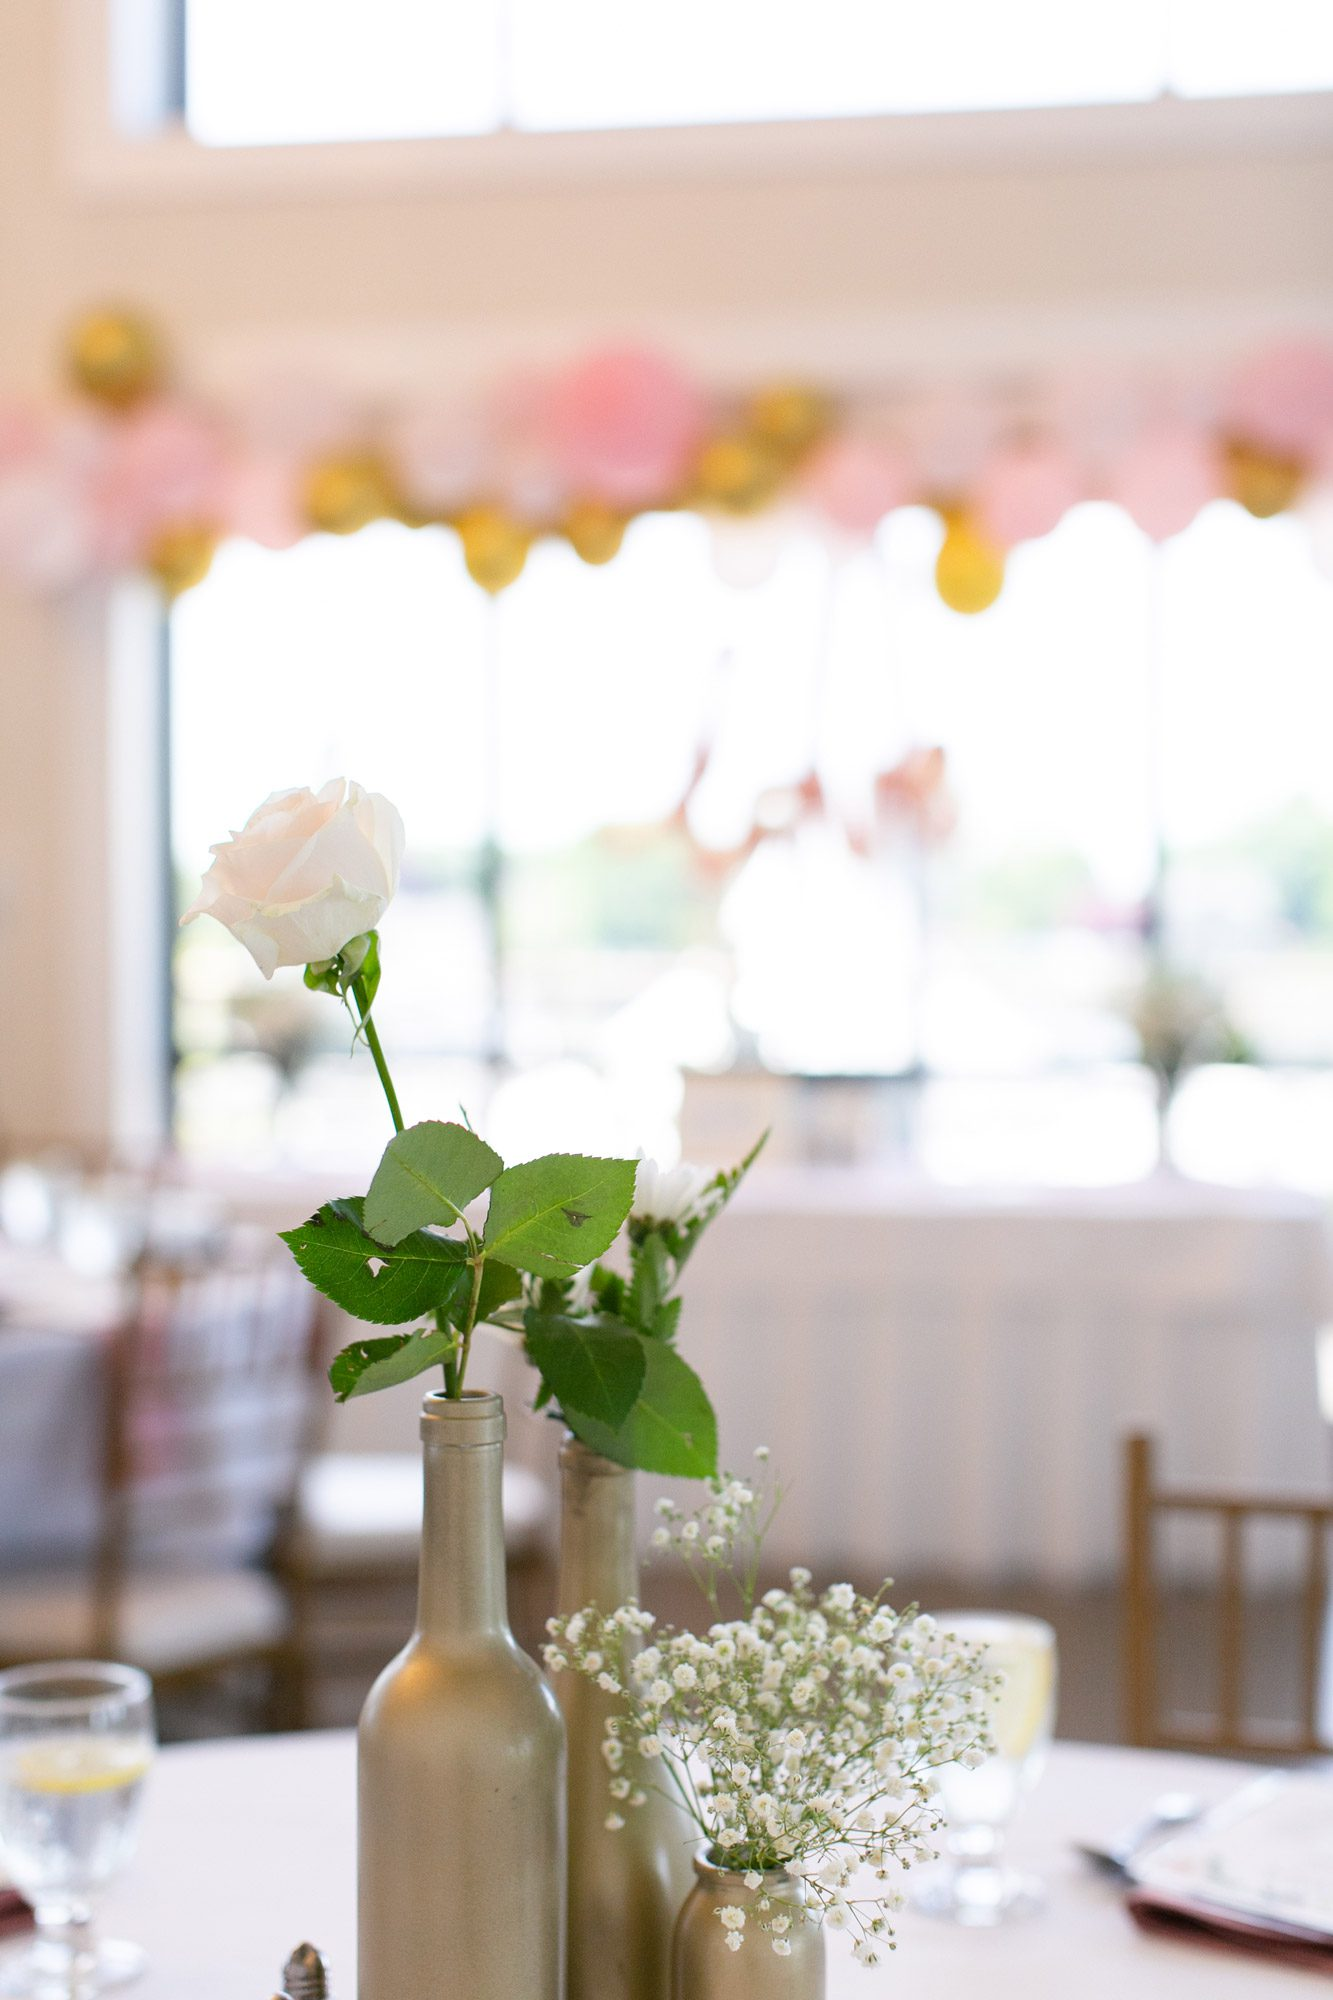 Single white roses in gold spray painted bottles as a centerpiece on a table.